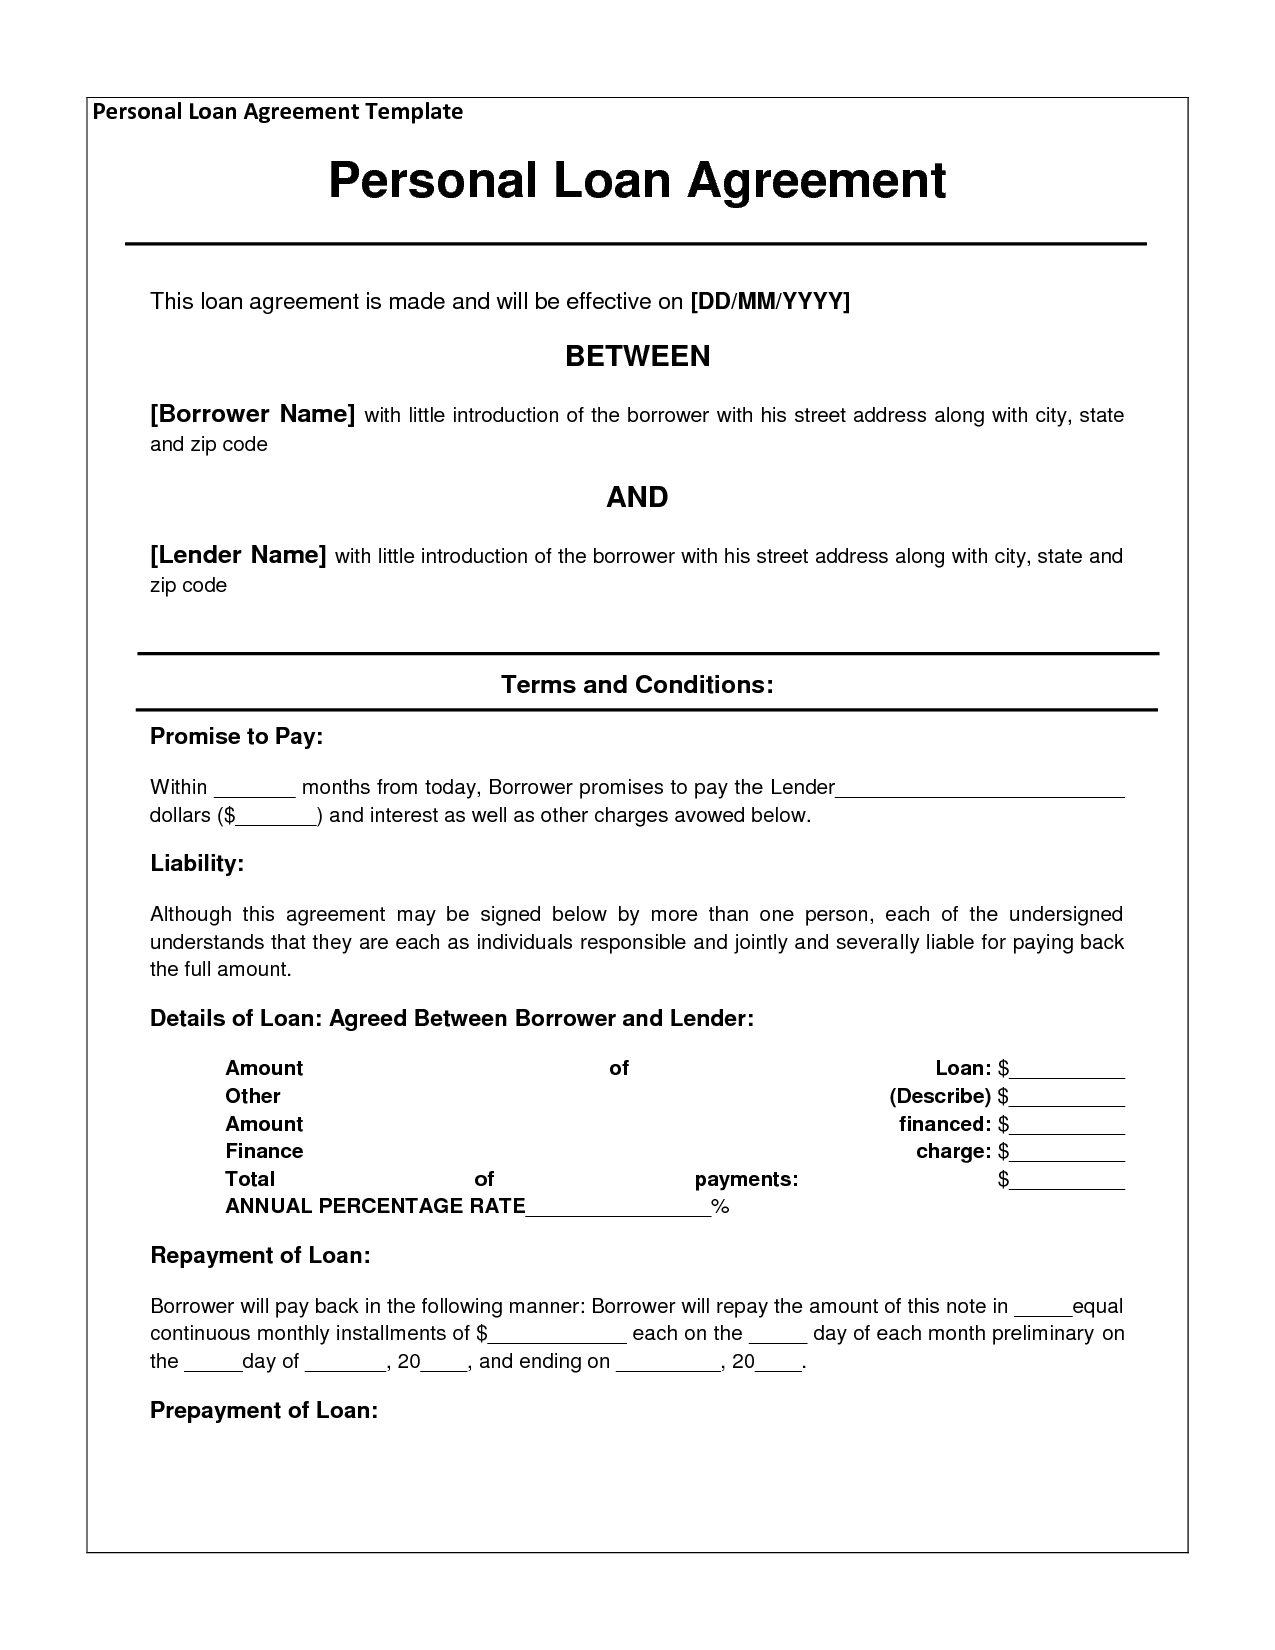 Free personal loan agreement form template 1000 Approved in 2 – Agreement Template Free